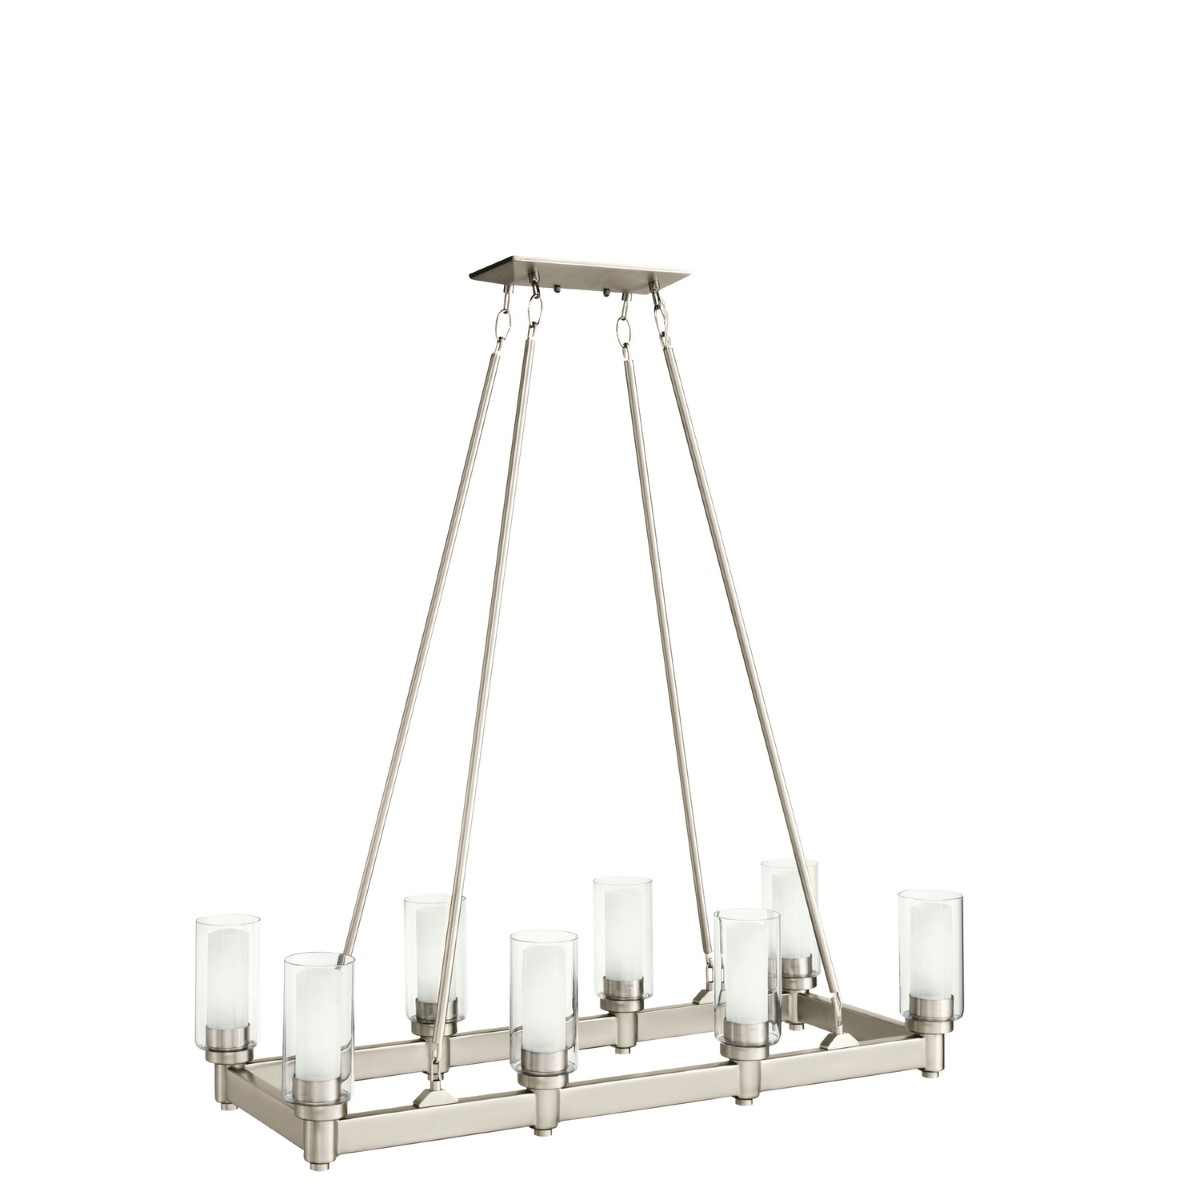 Kichler Circolo Circolo Chandelier with Clear / Satin Etched Steel Shade - Brushed Nickel (2943NI)